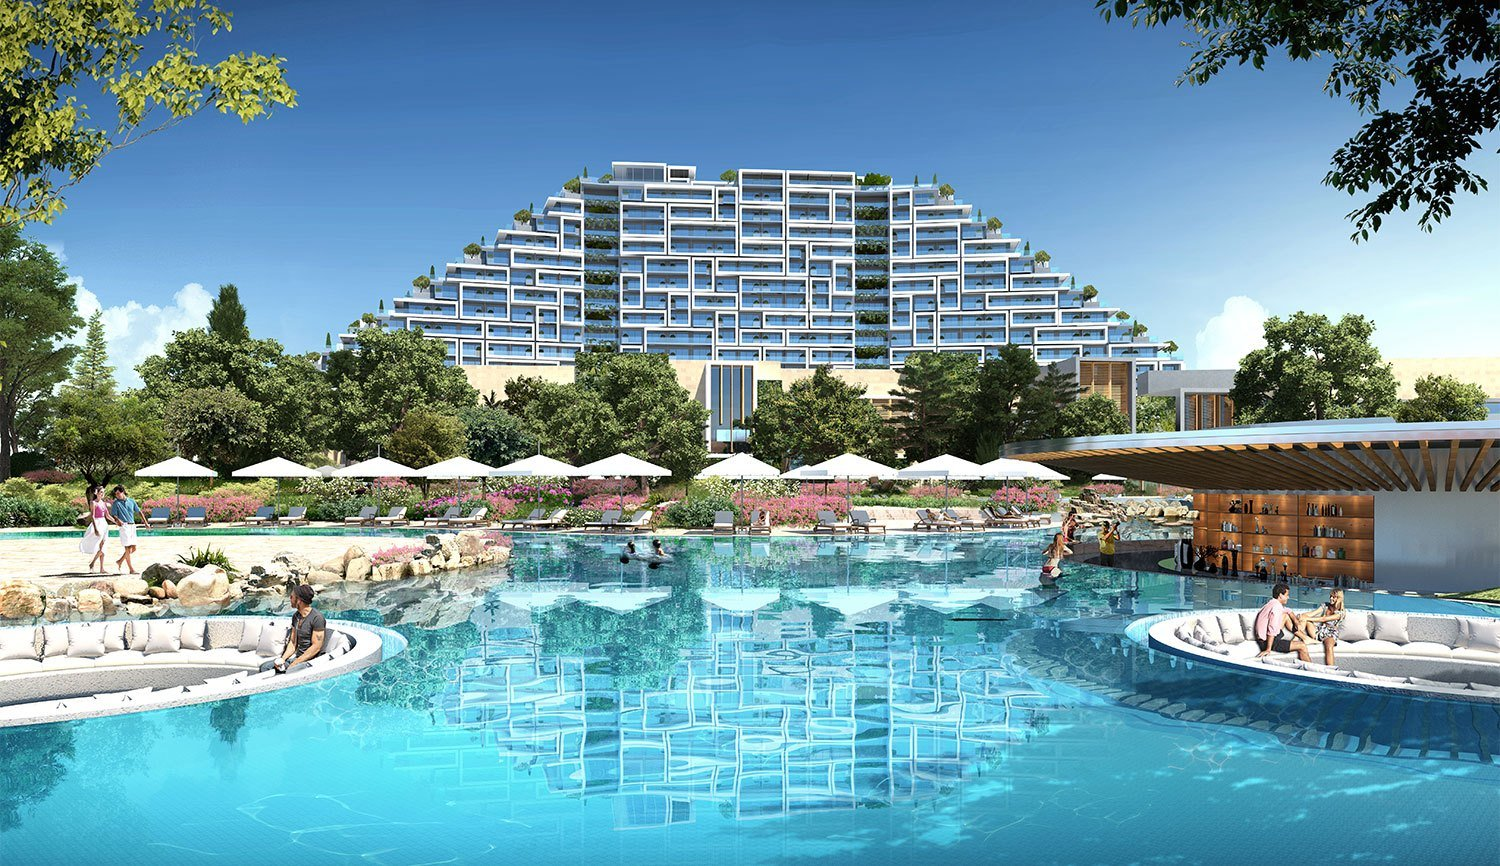 City of Dreams Mediterranean Melco Resorts